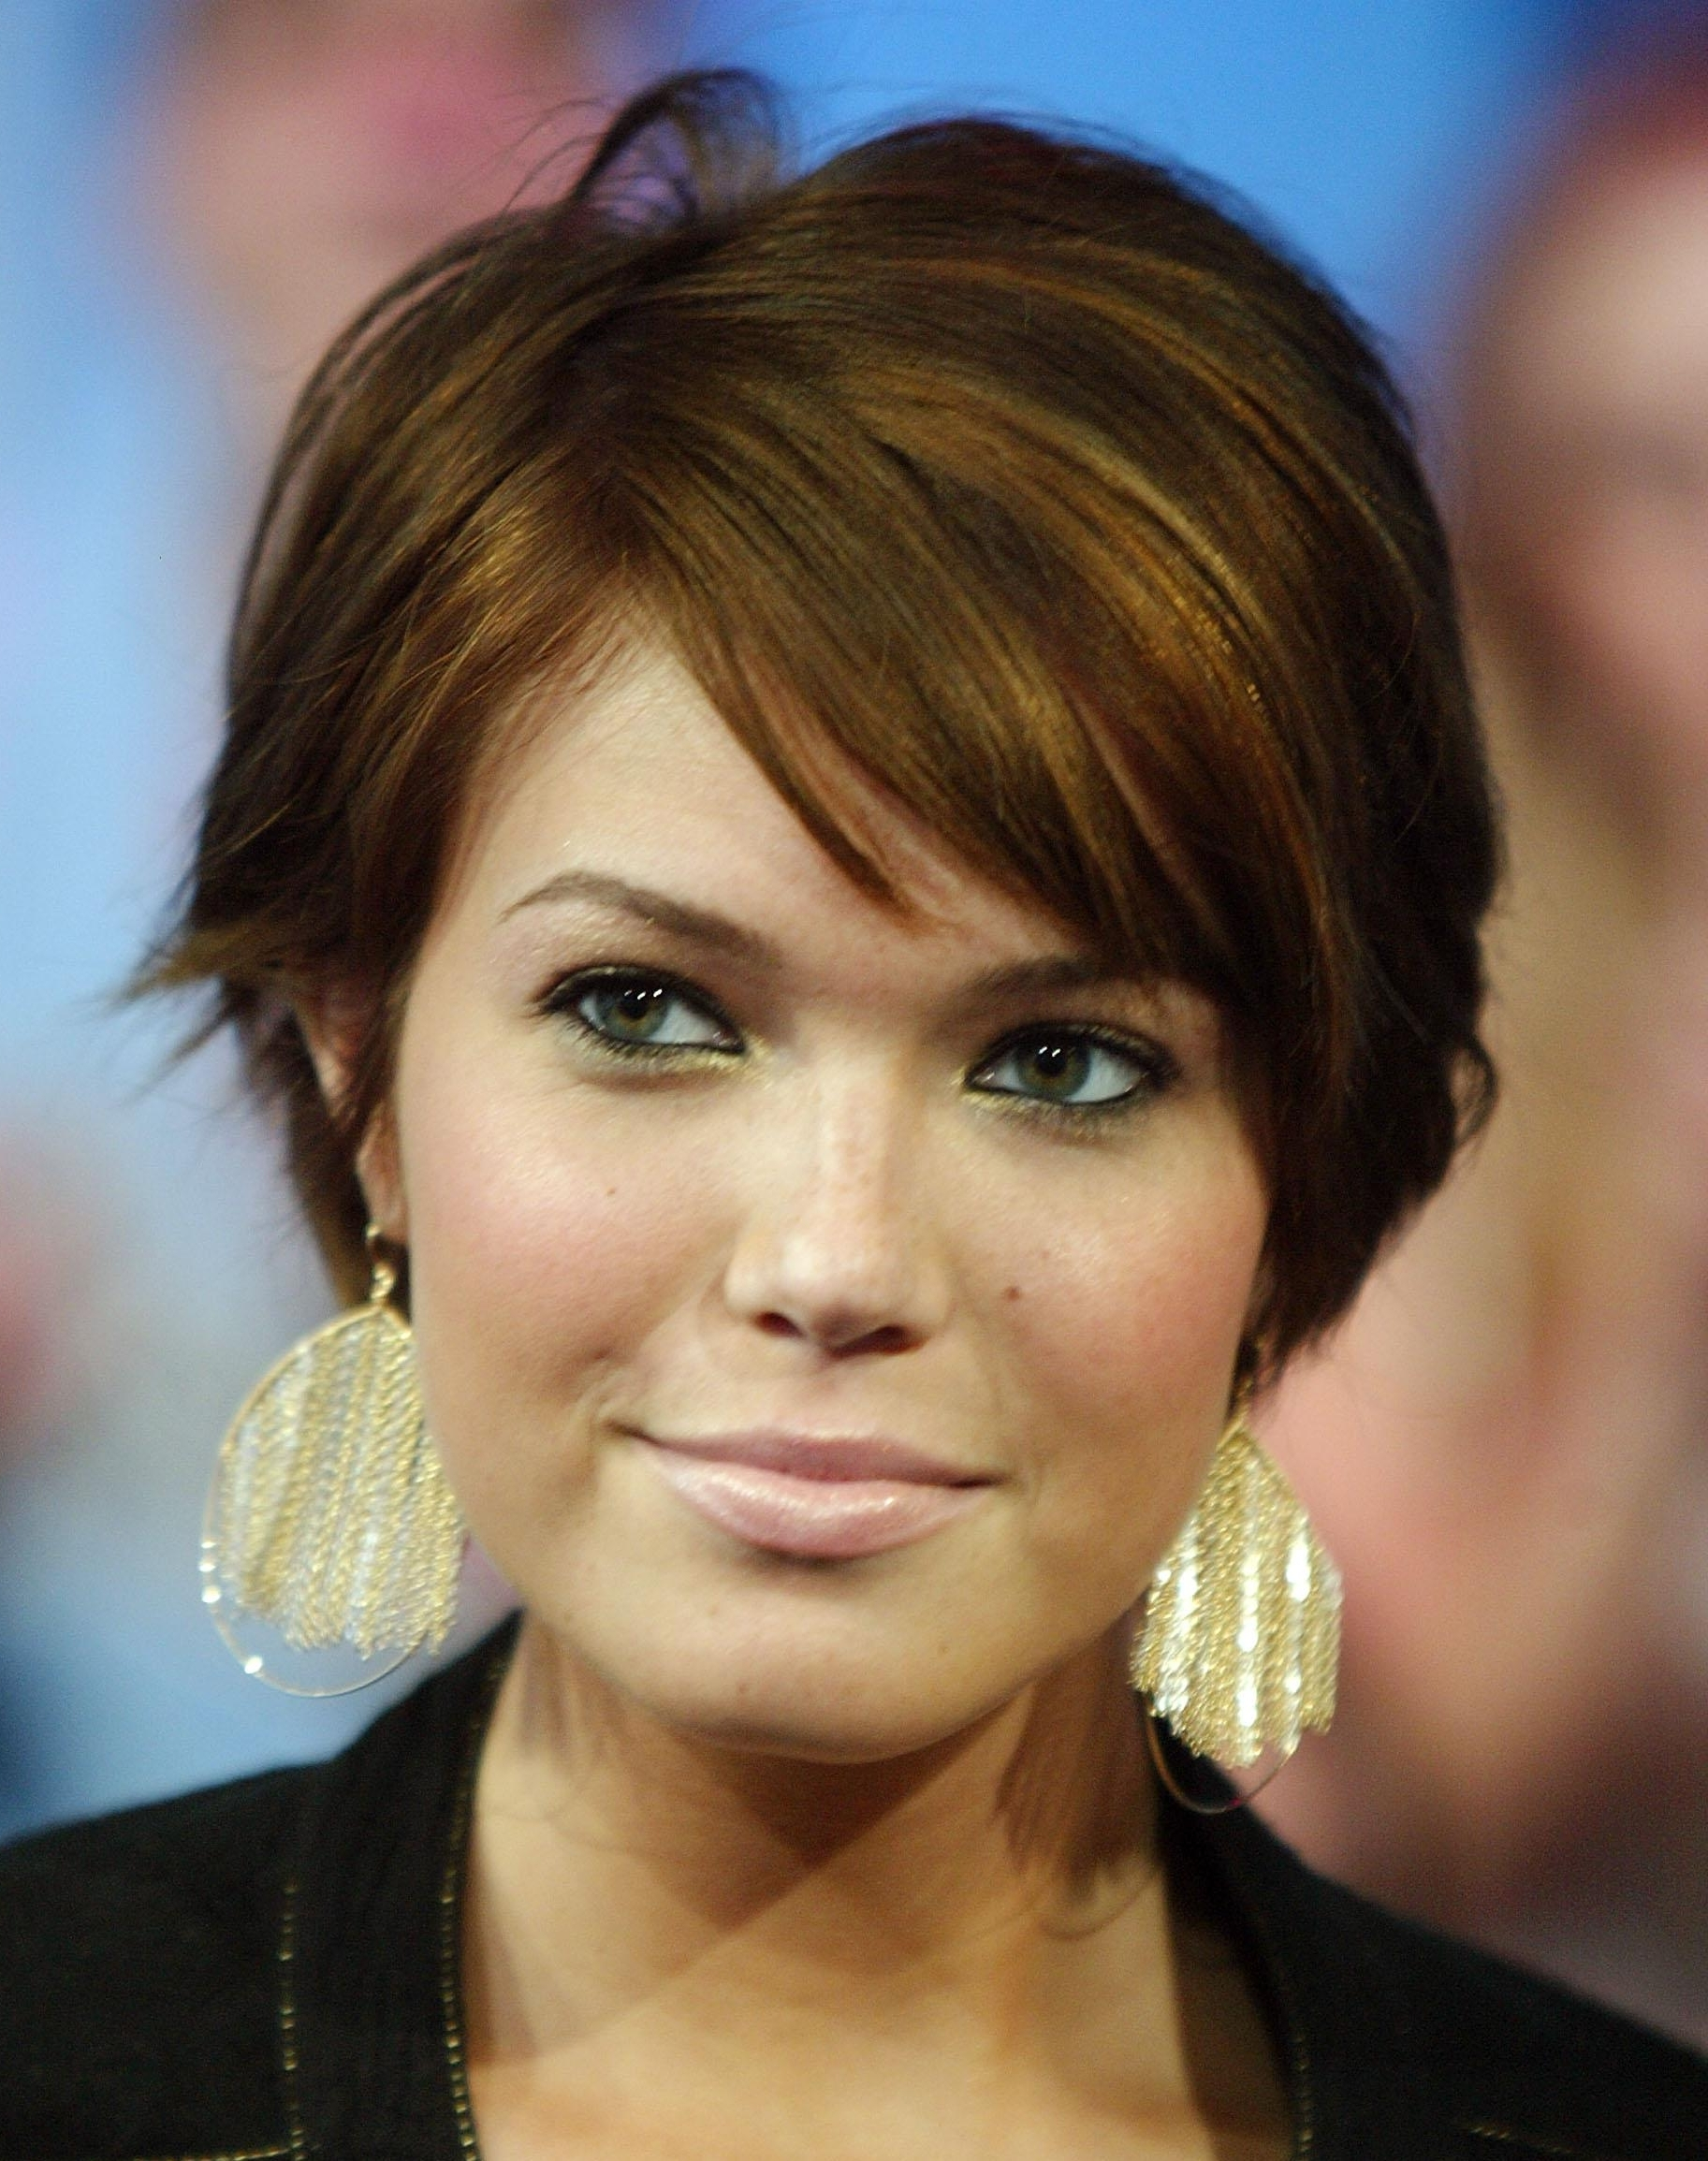 Best Pixie Haircuts For Round Faces 2017 | Hairdrome Within Most Popular Pixie Hairstyles For Round Face Shape (View 4 of 15)